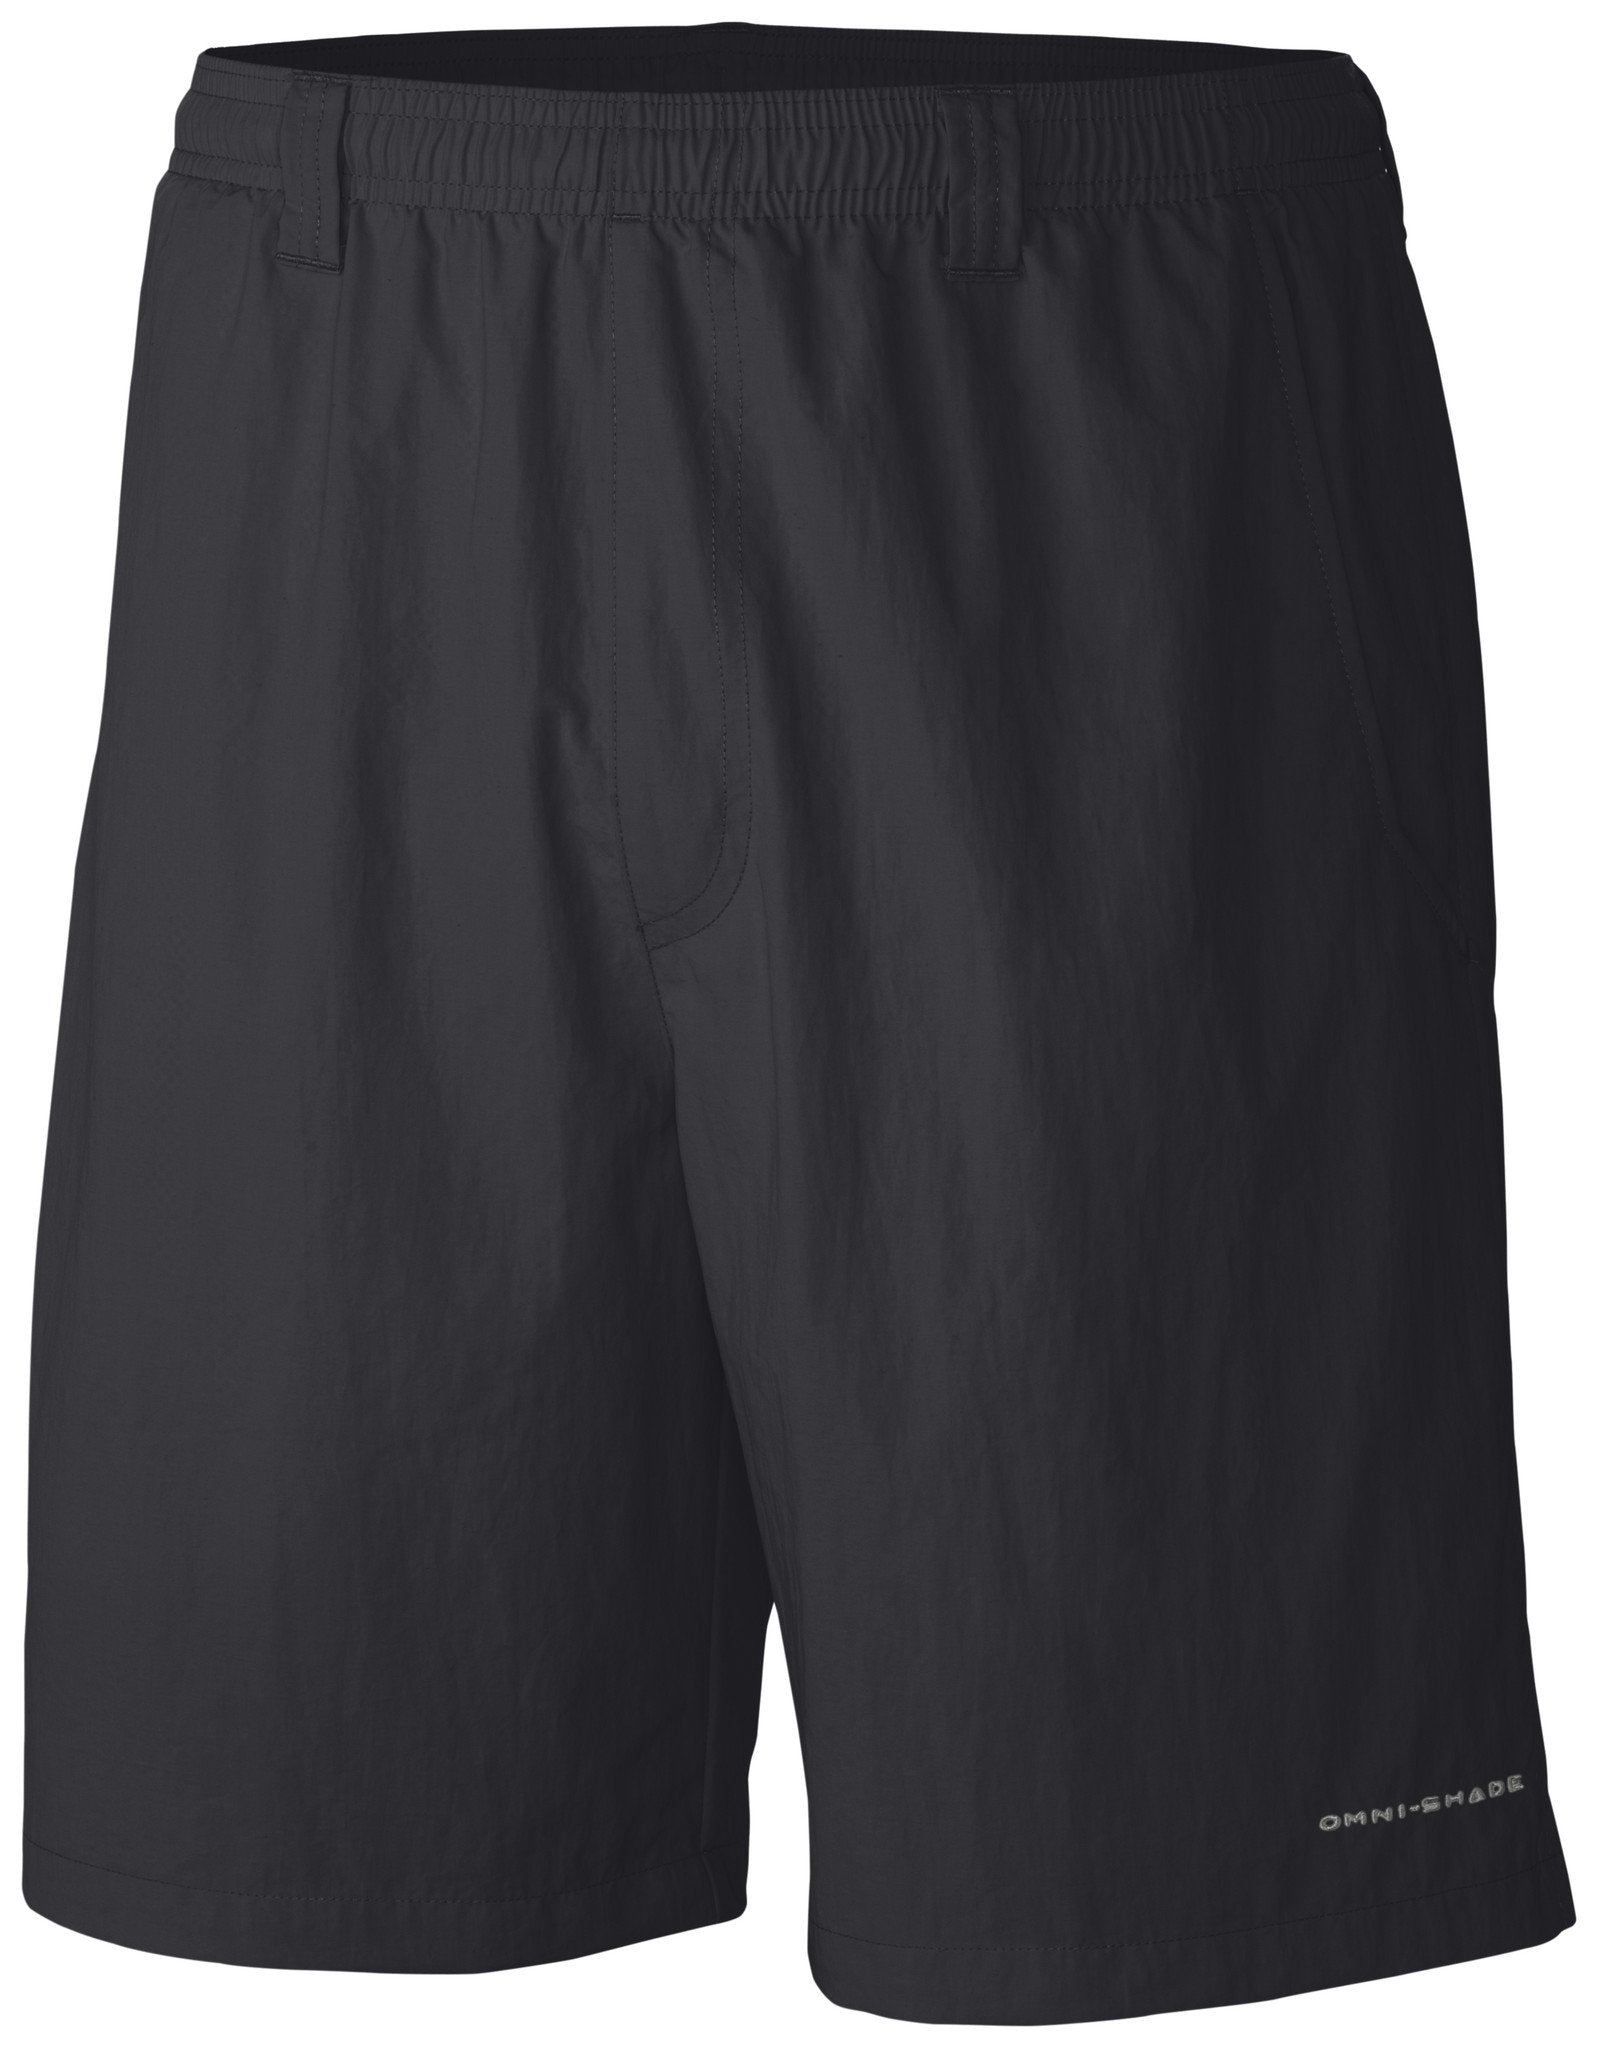 BACKCAST WATER SHORT 6""